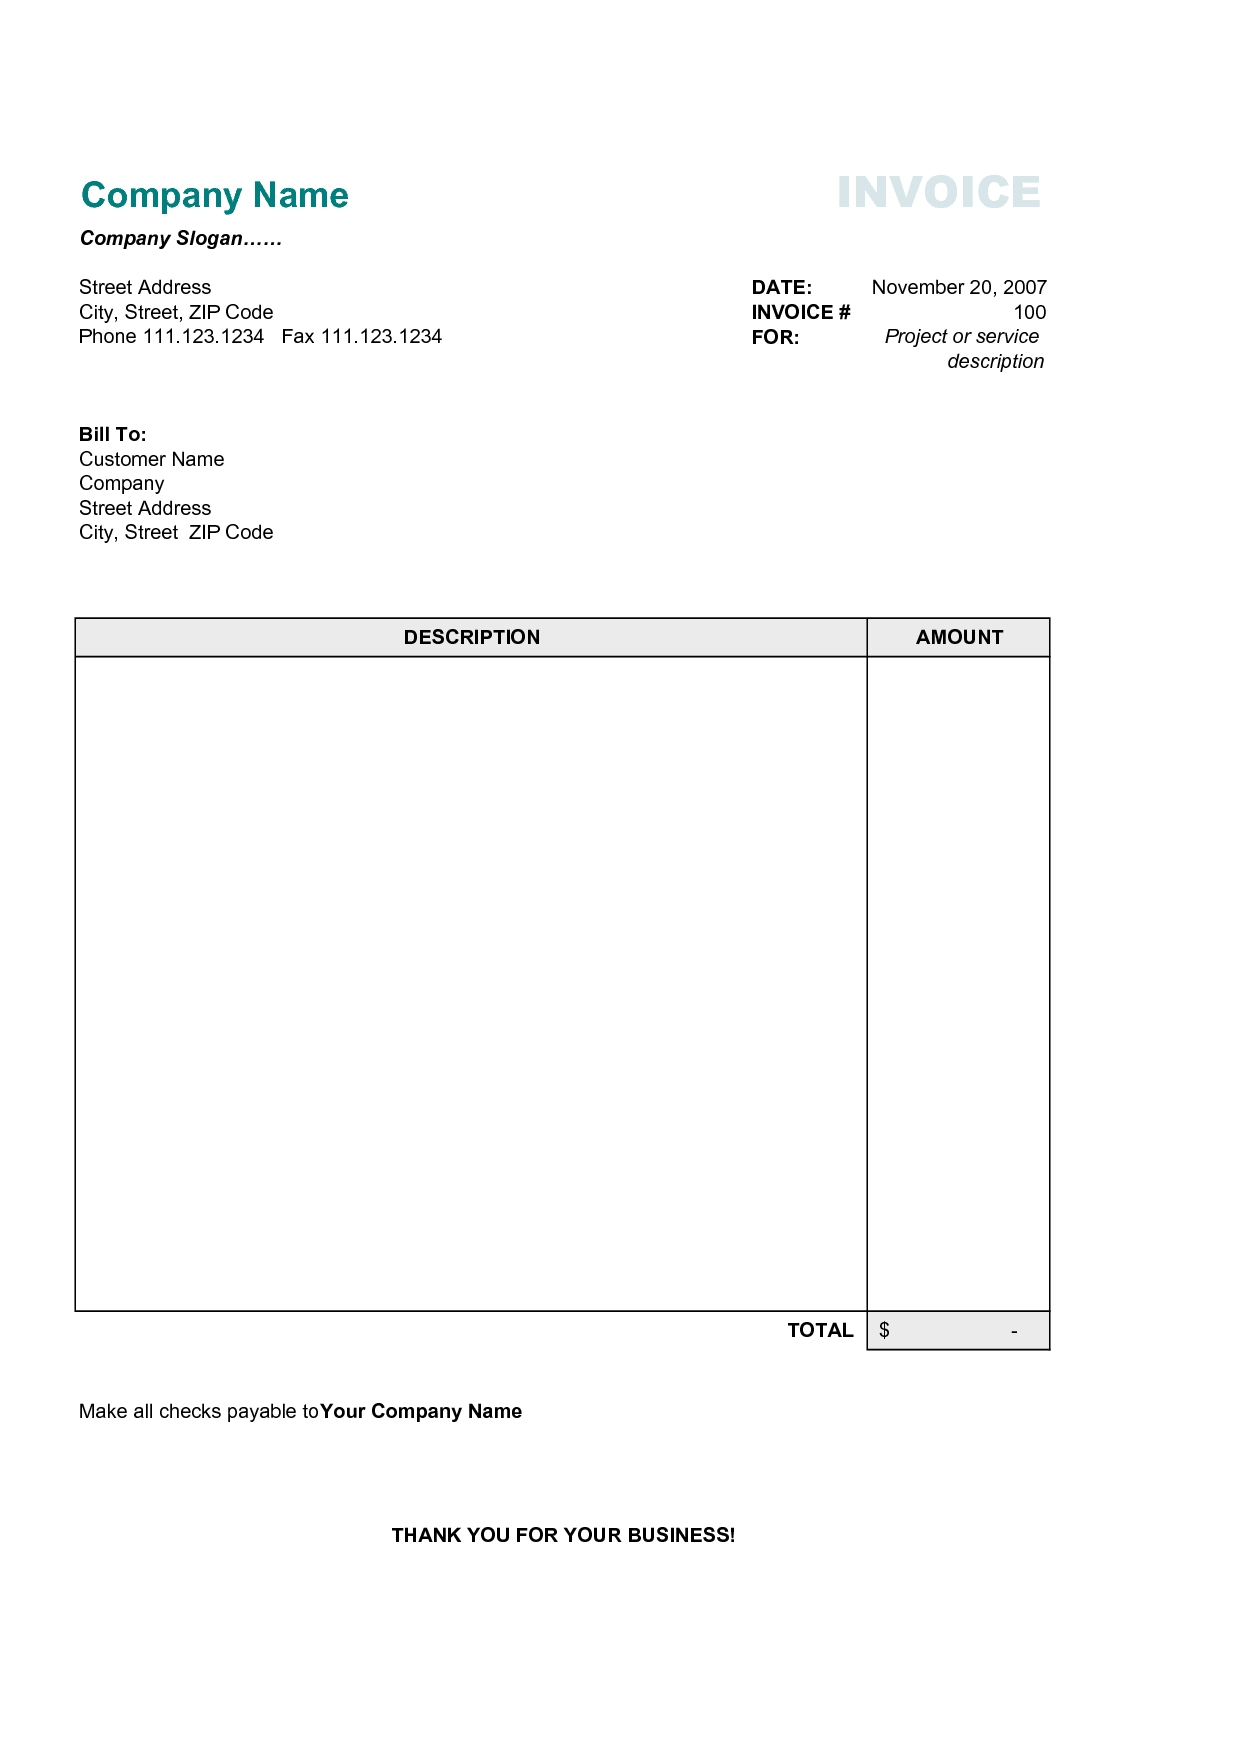 Simple Invoice Template Invoice Example - Invoice creator free download for service business